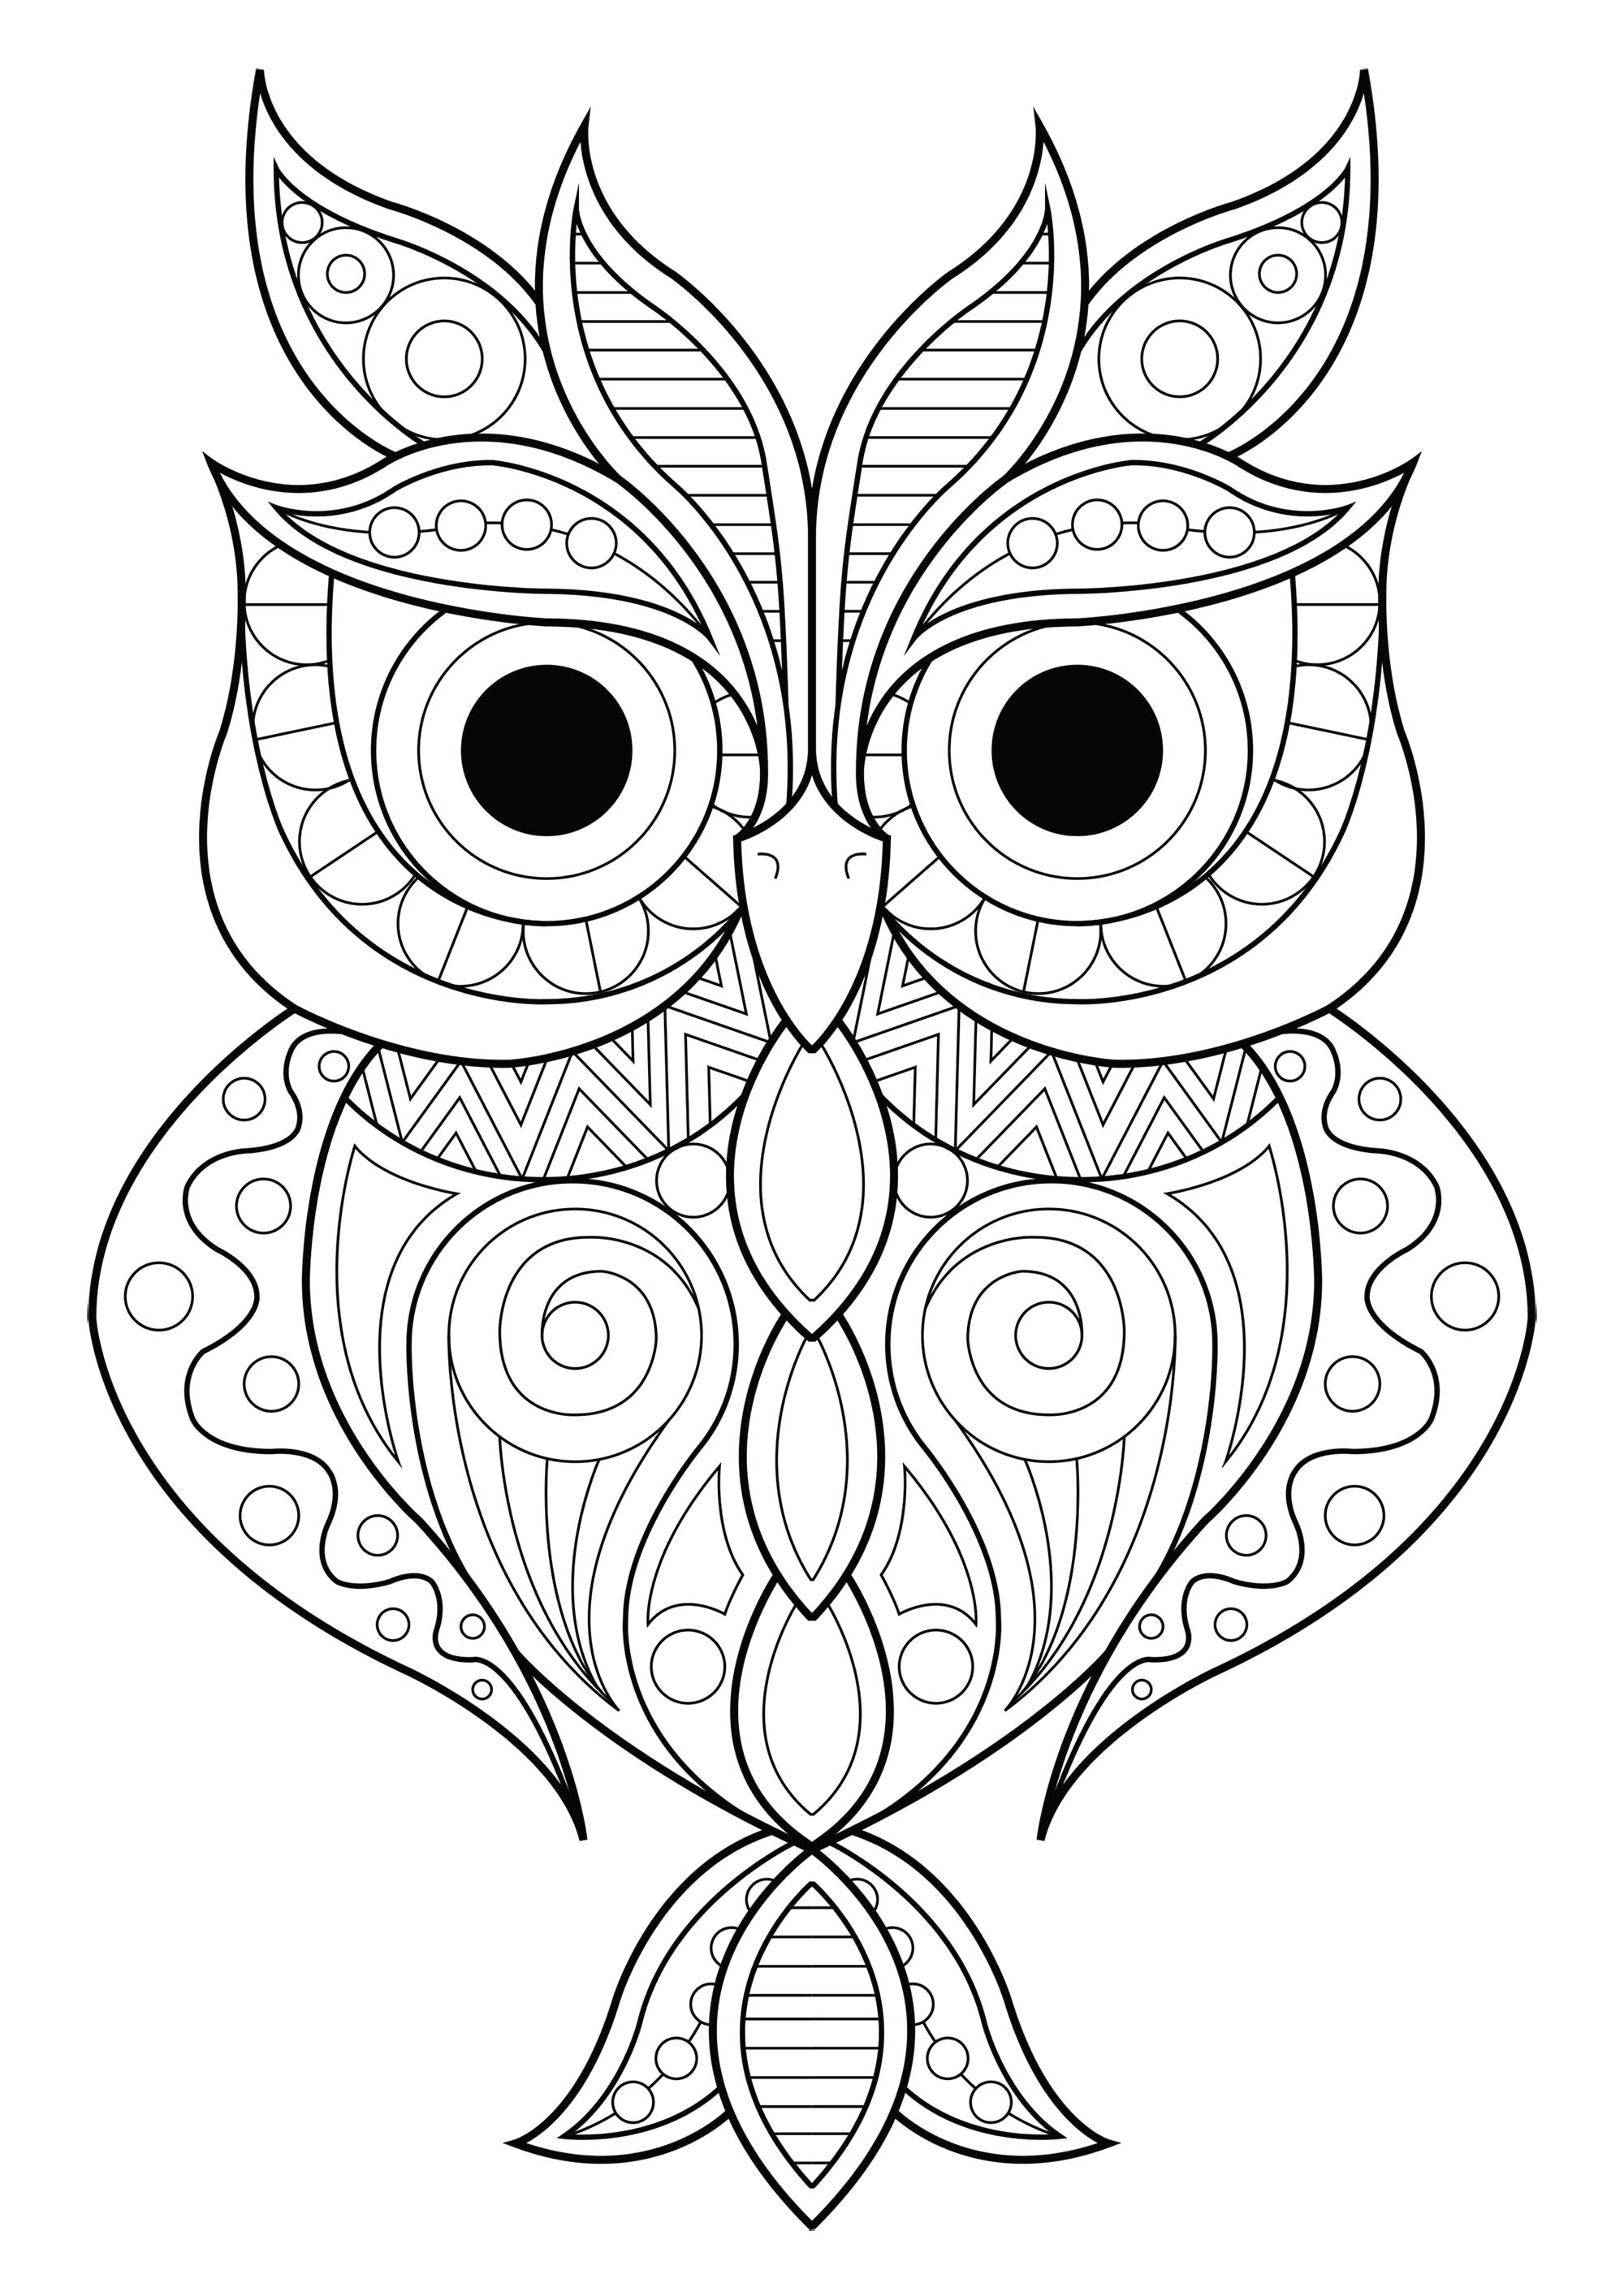 Owl simple patterns 2 - Owls Adult Coloring Pages